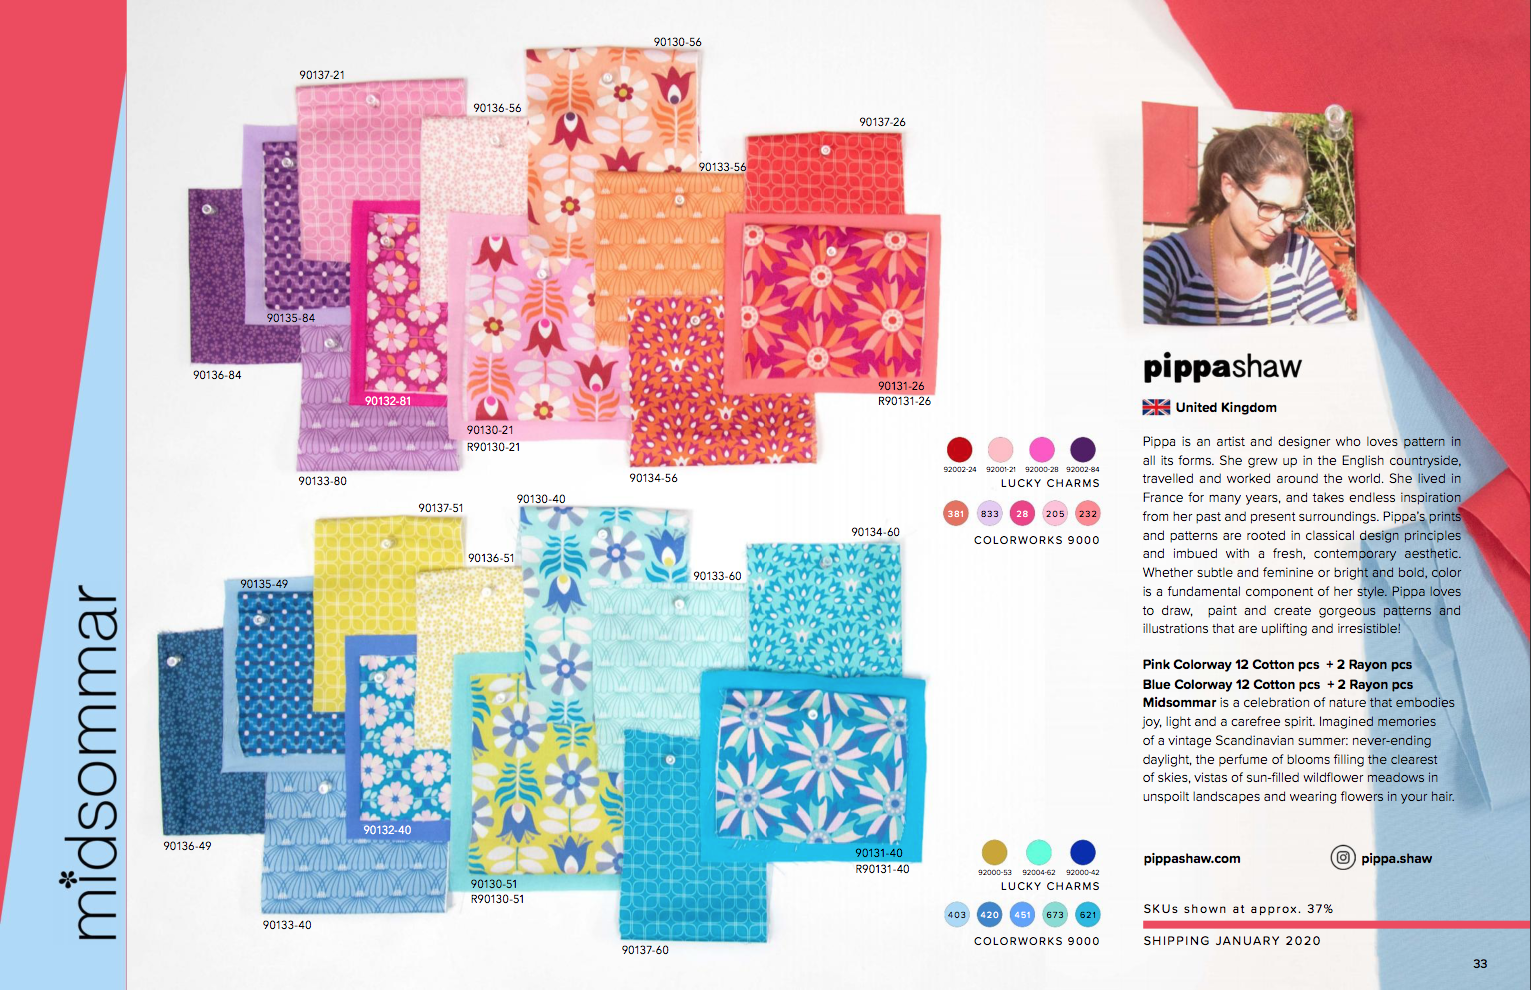 the full midsommar collection (in pink and blue colour-ways) featured in the FIGO lookbook (pages 34-35)